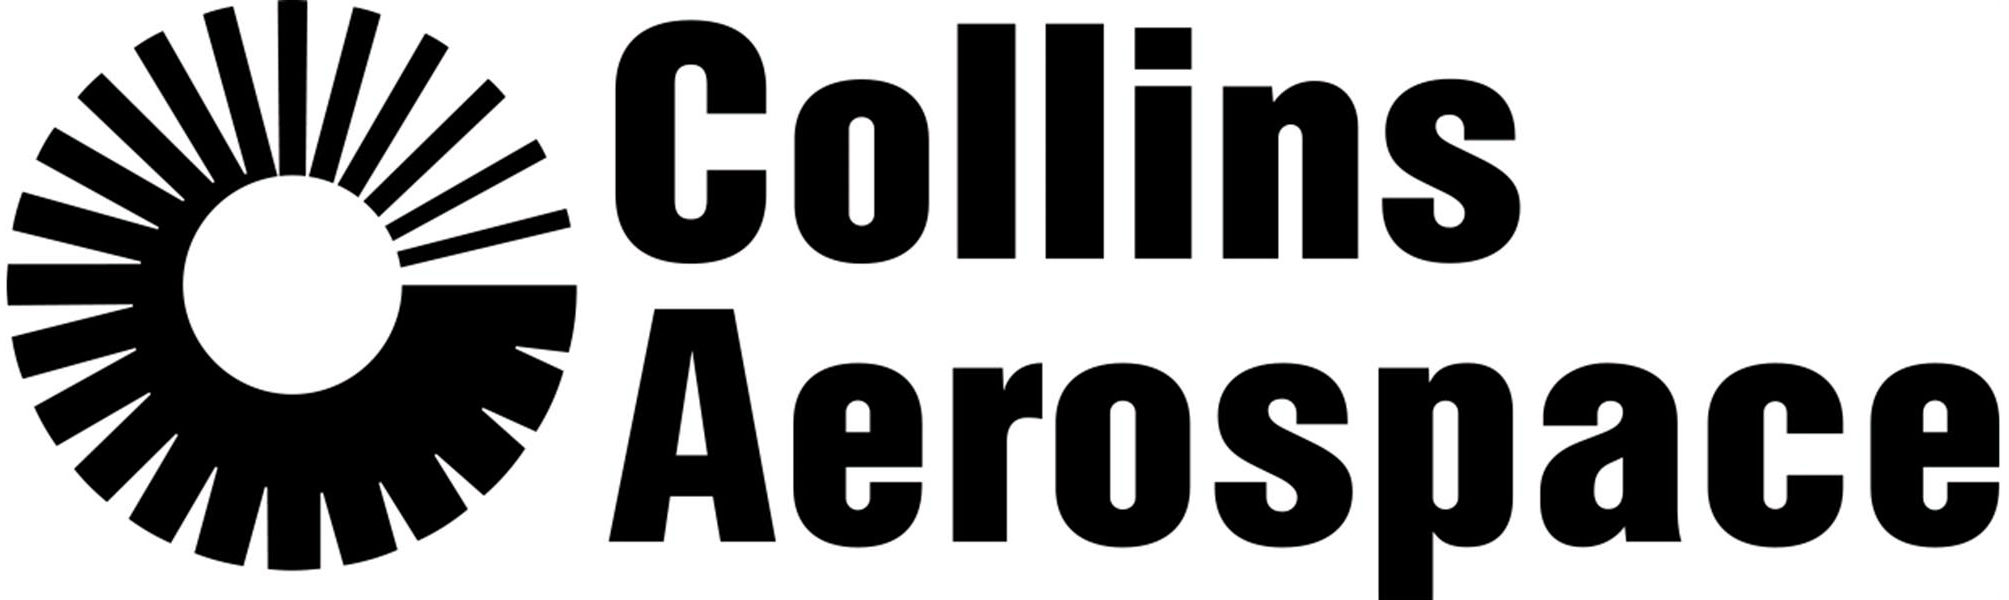 Collins Aerospace logo - JFH